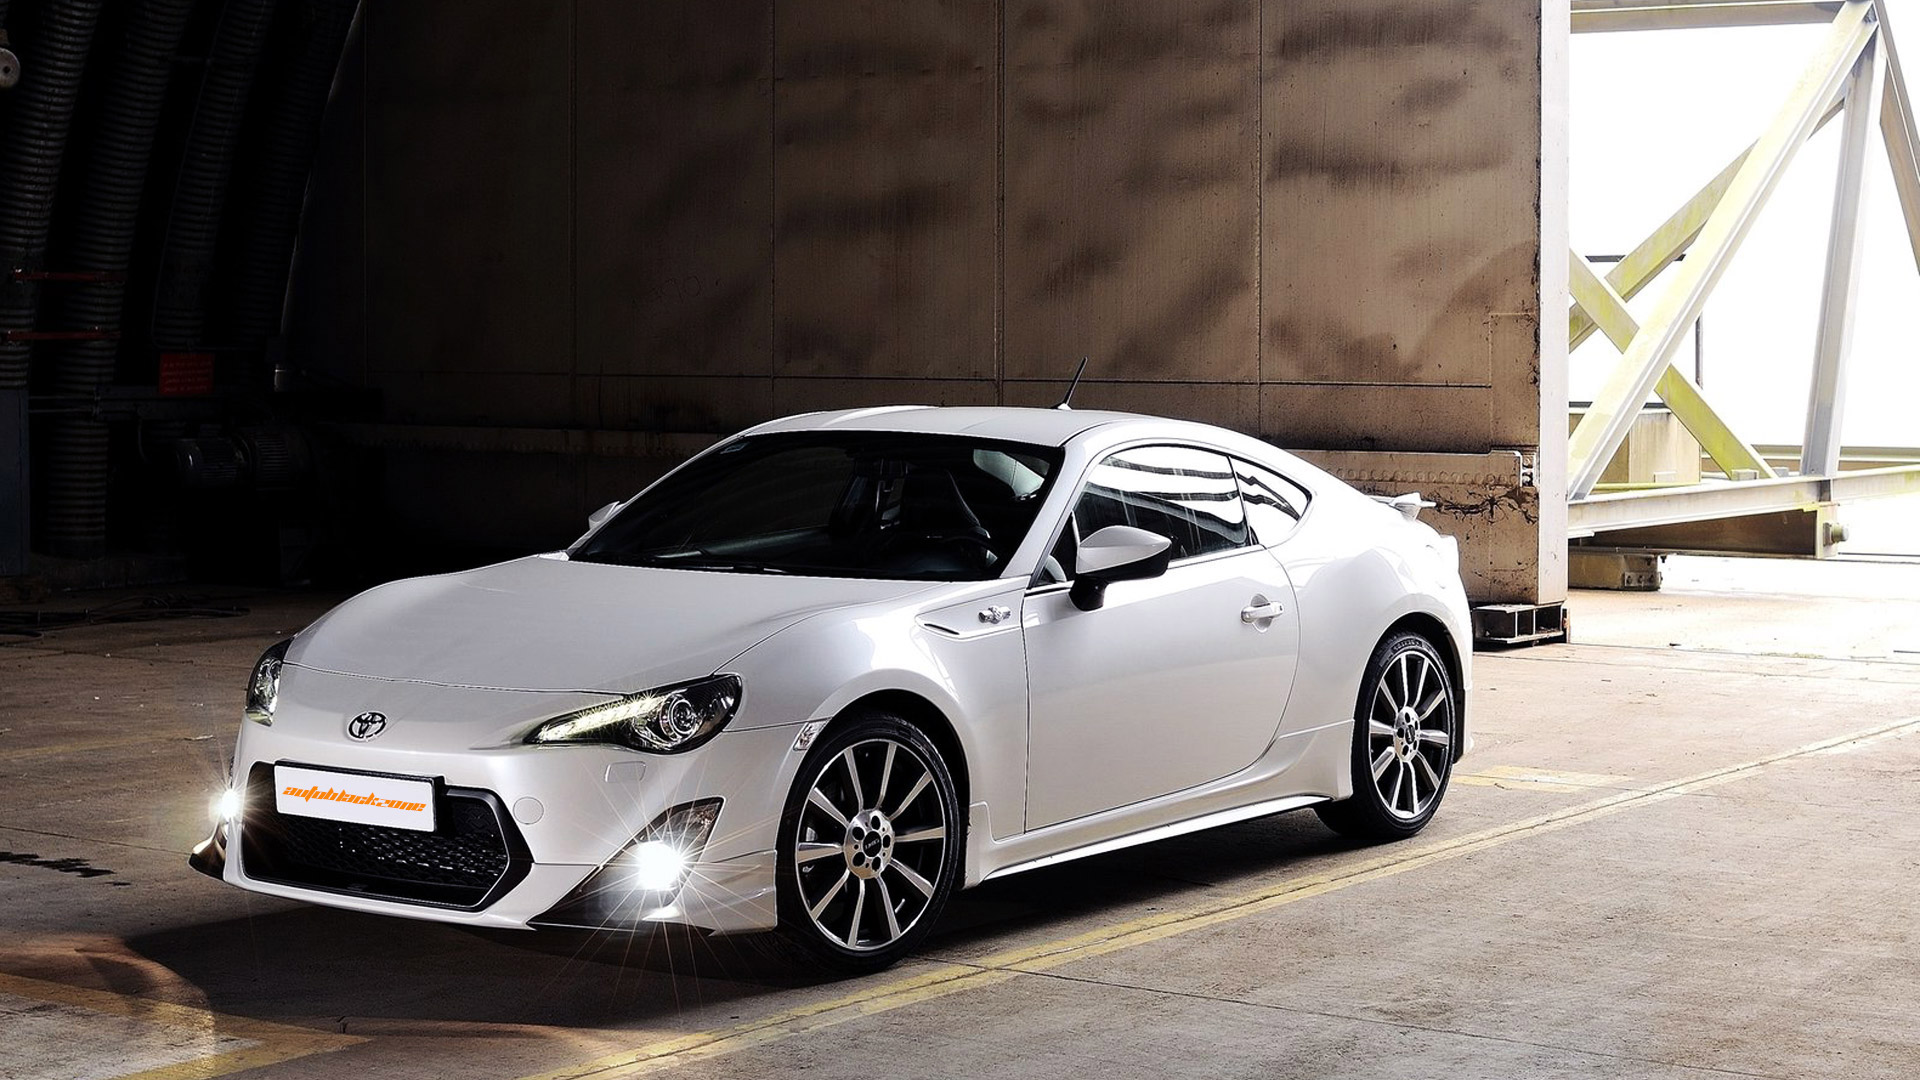 Anime 4k Wallpaper: Toyota GT 86 Wallpapers High Quality